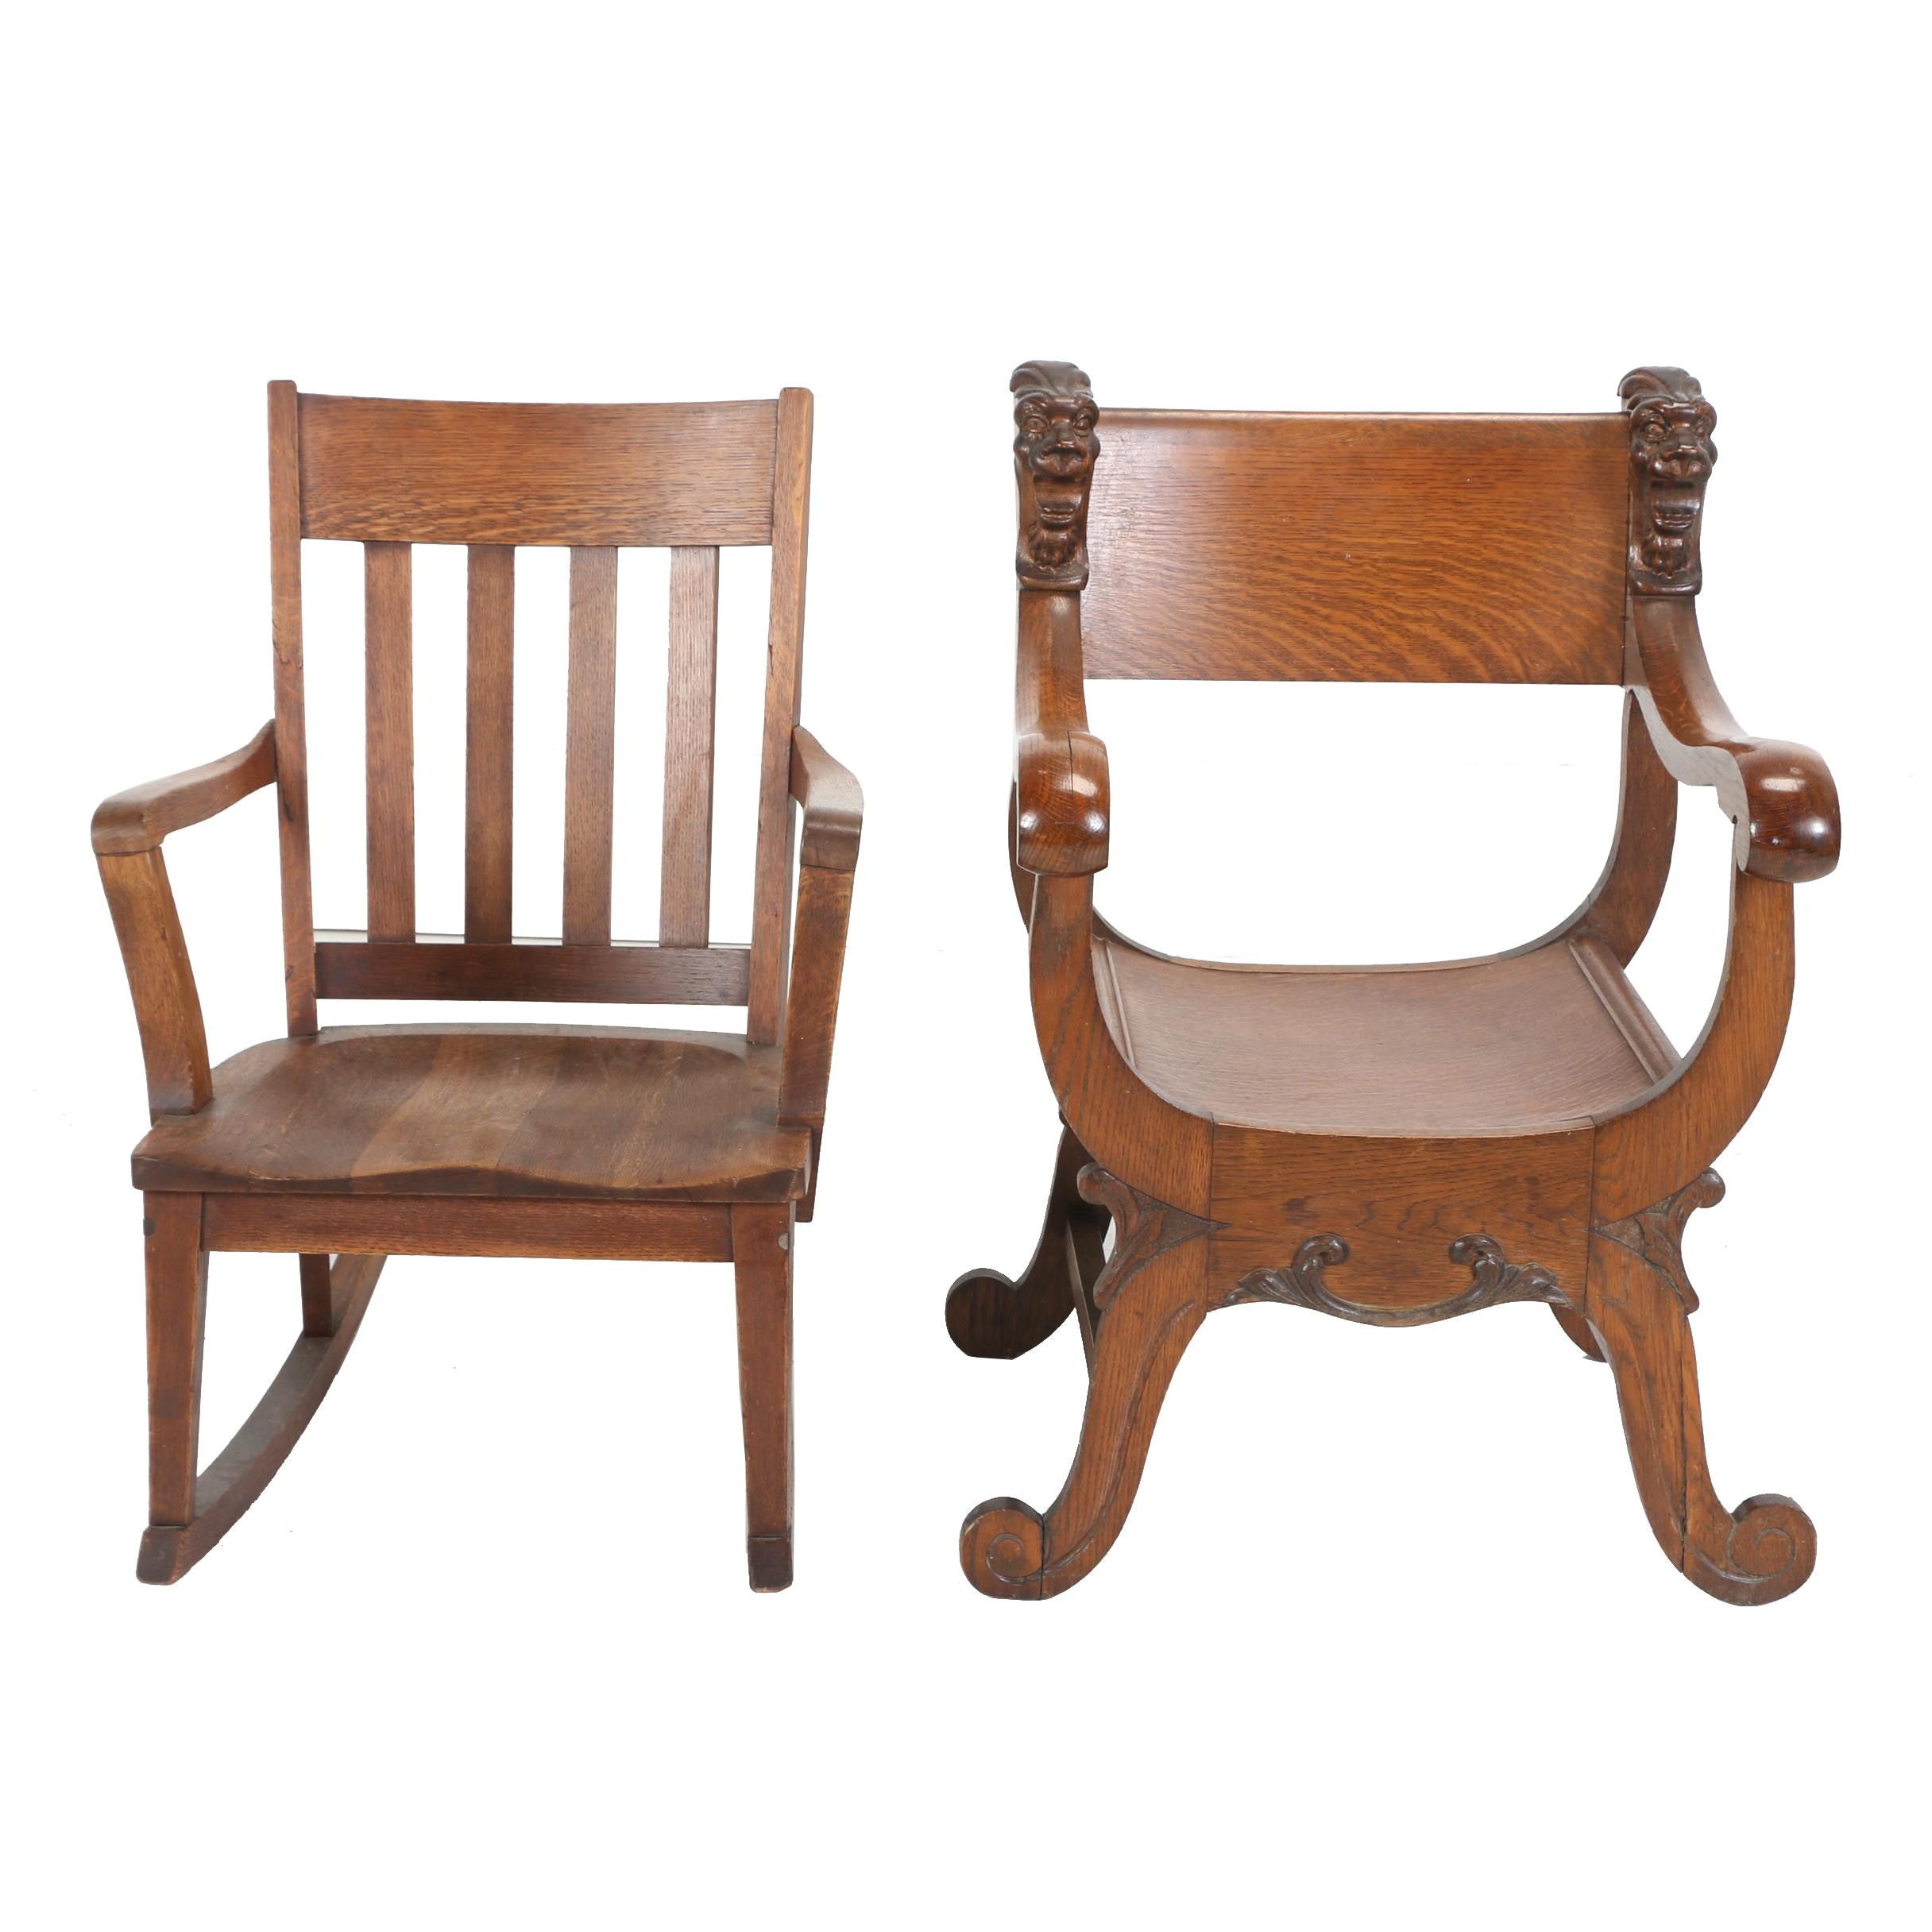 Two American Oak Armchairs, Early 20th Century